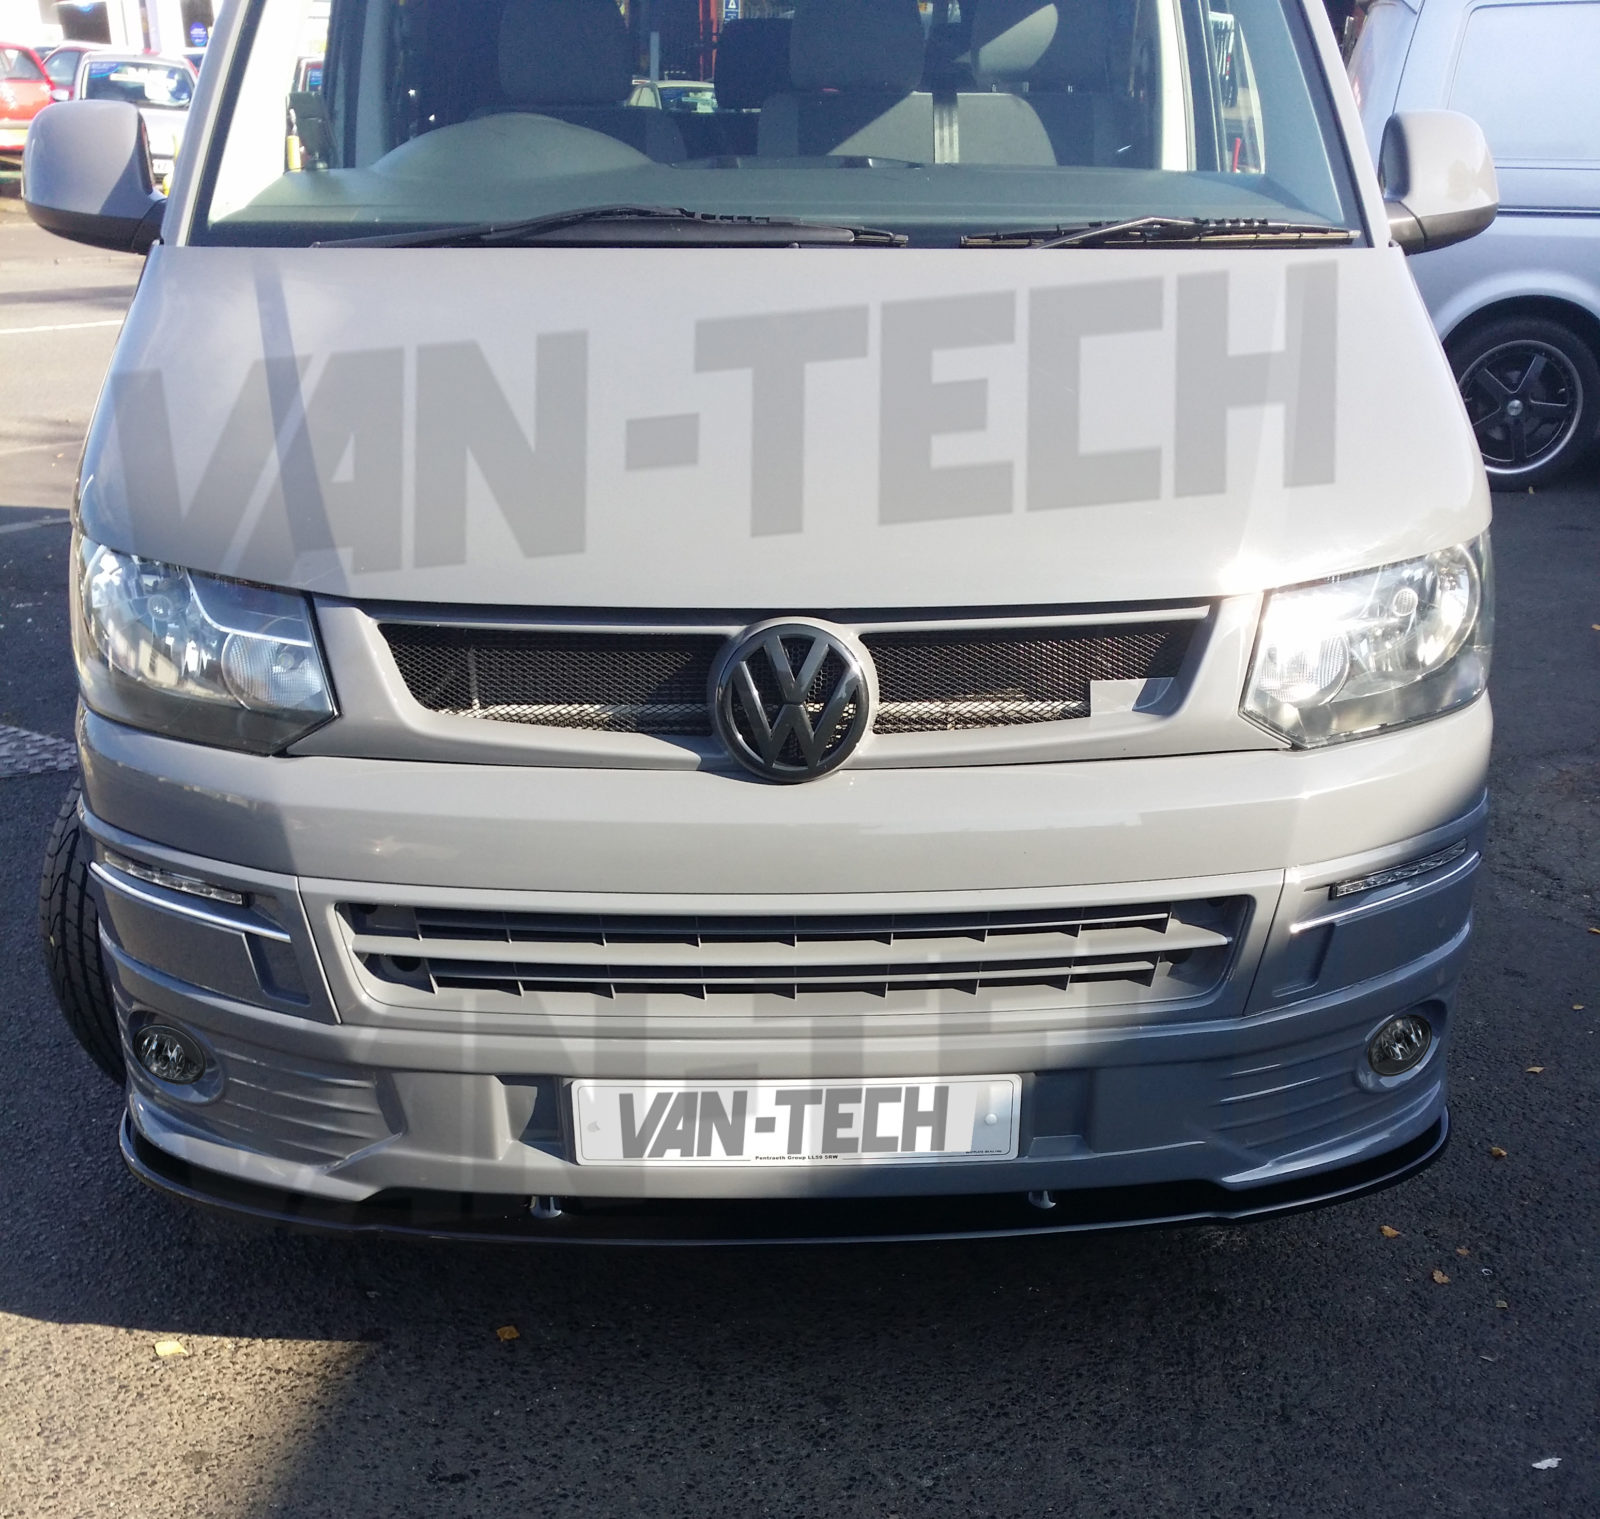 vw transporter t5 lower front end conversion styling kit van tech. Black Bedroom Furniture Sets. Home Design Ideas